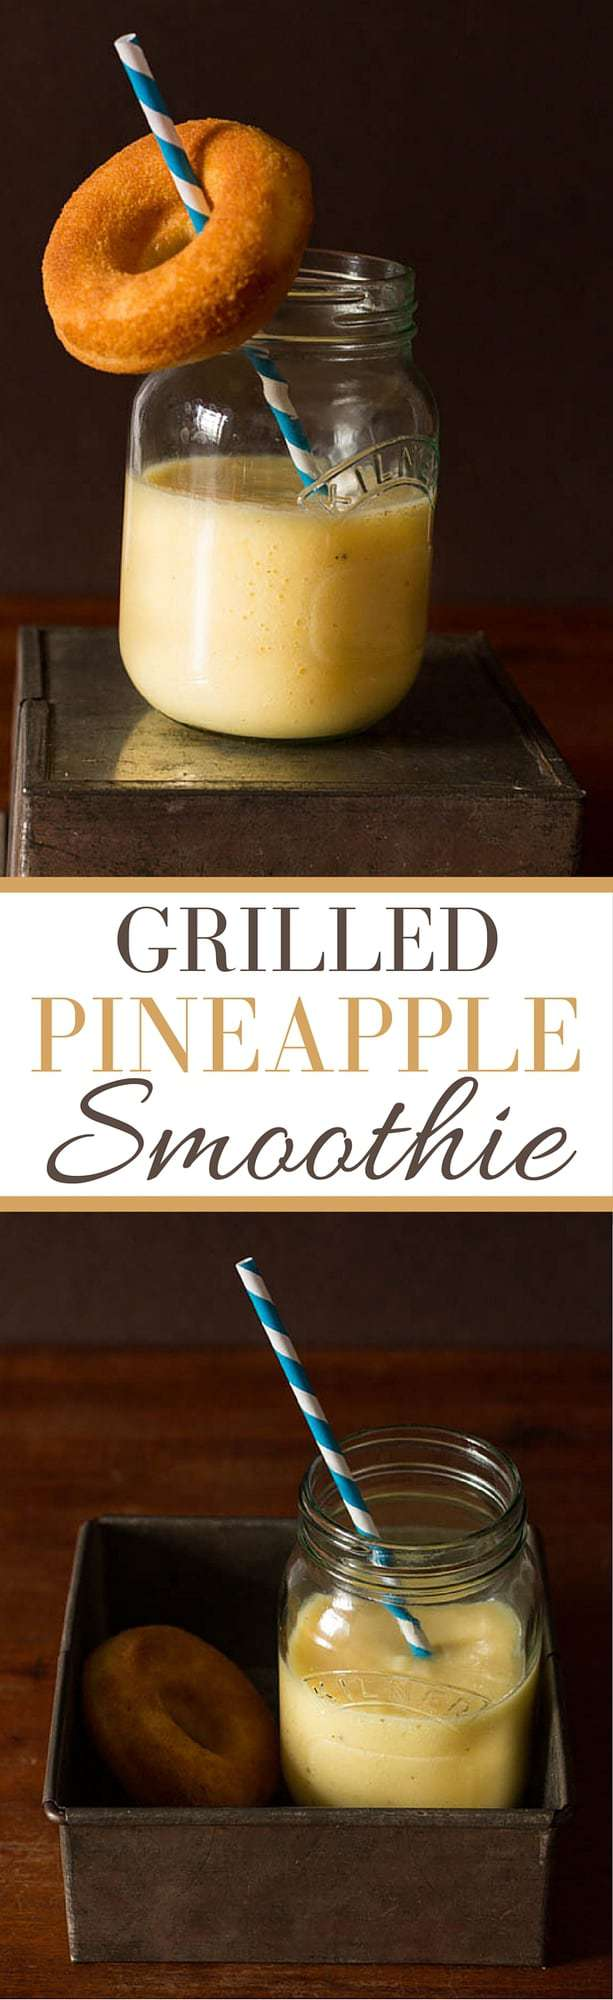 Grilled Pineapple Smoothie Recipe | Recipes From A Pantry